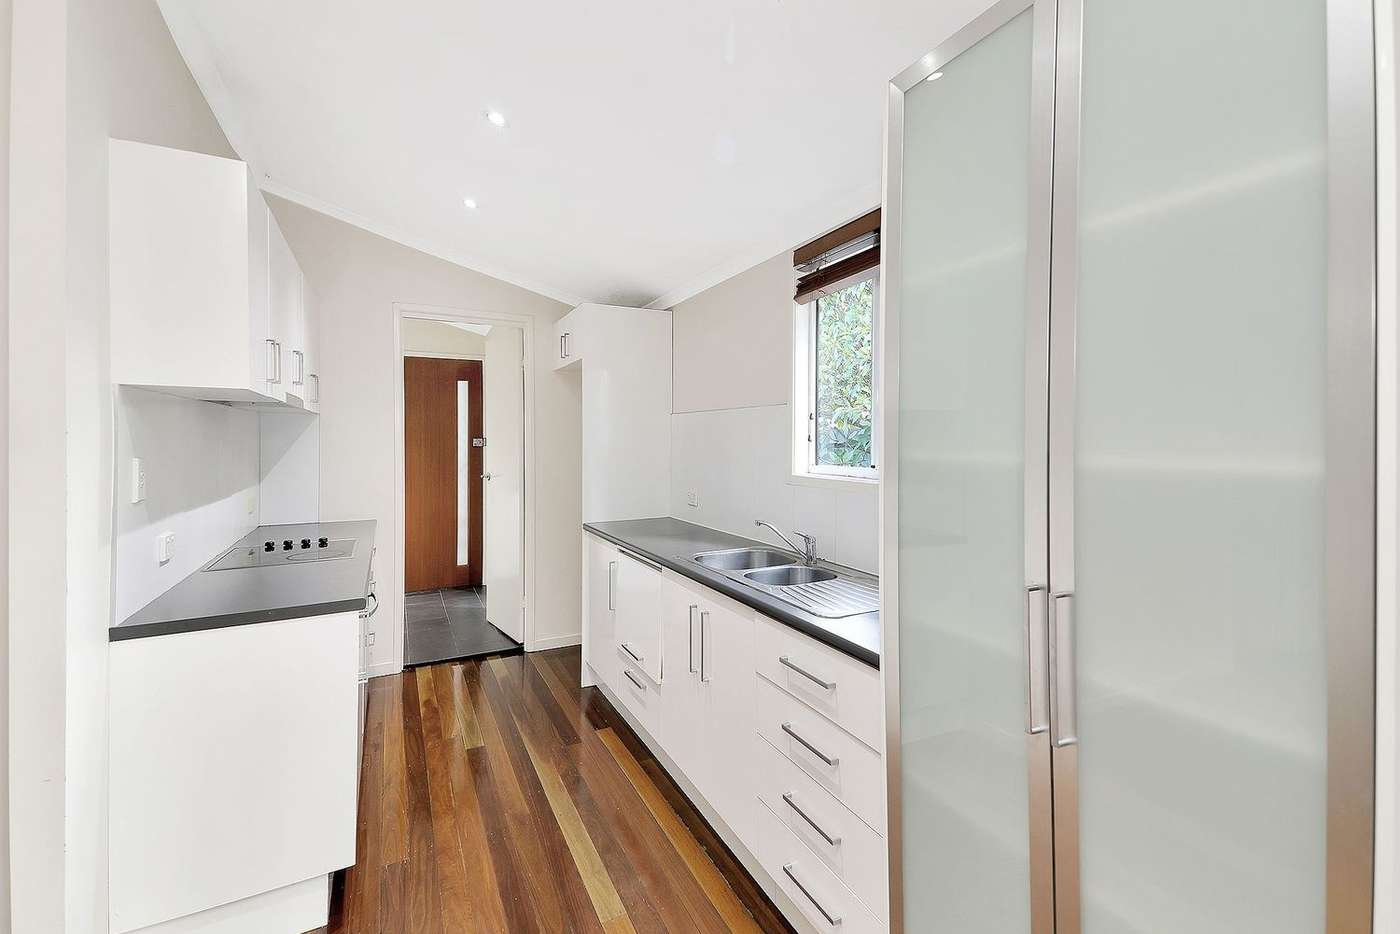 Sixth view of Homely house listing, 187 Blunder Road, Durack QLD 4077